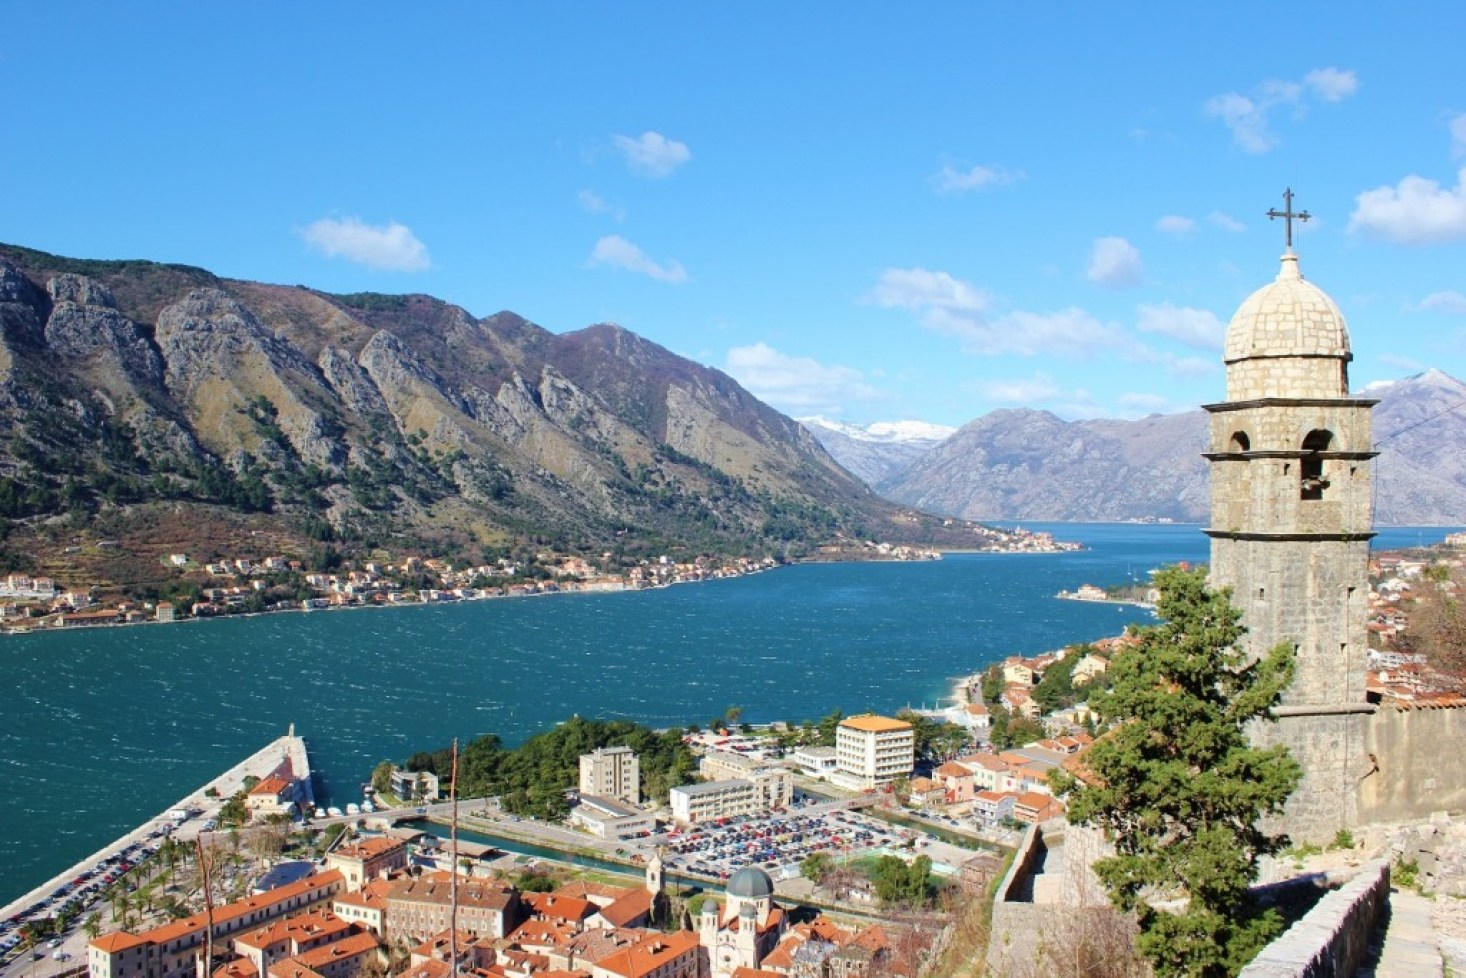 Church of Our Lady of Remedy and Bay of Kotor, Kotor, Montenegro